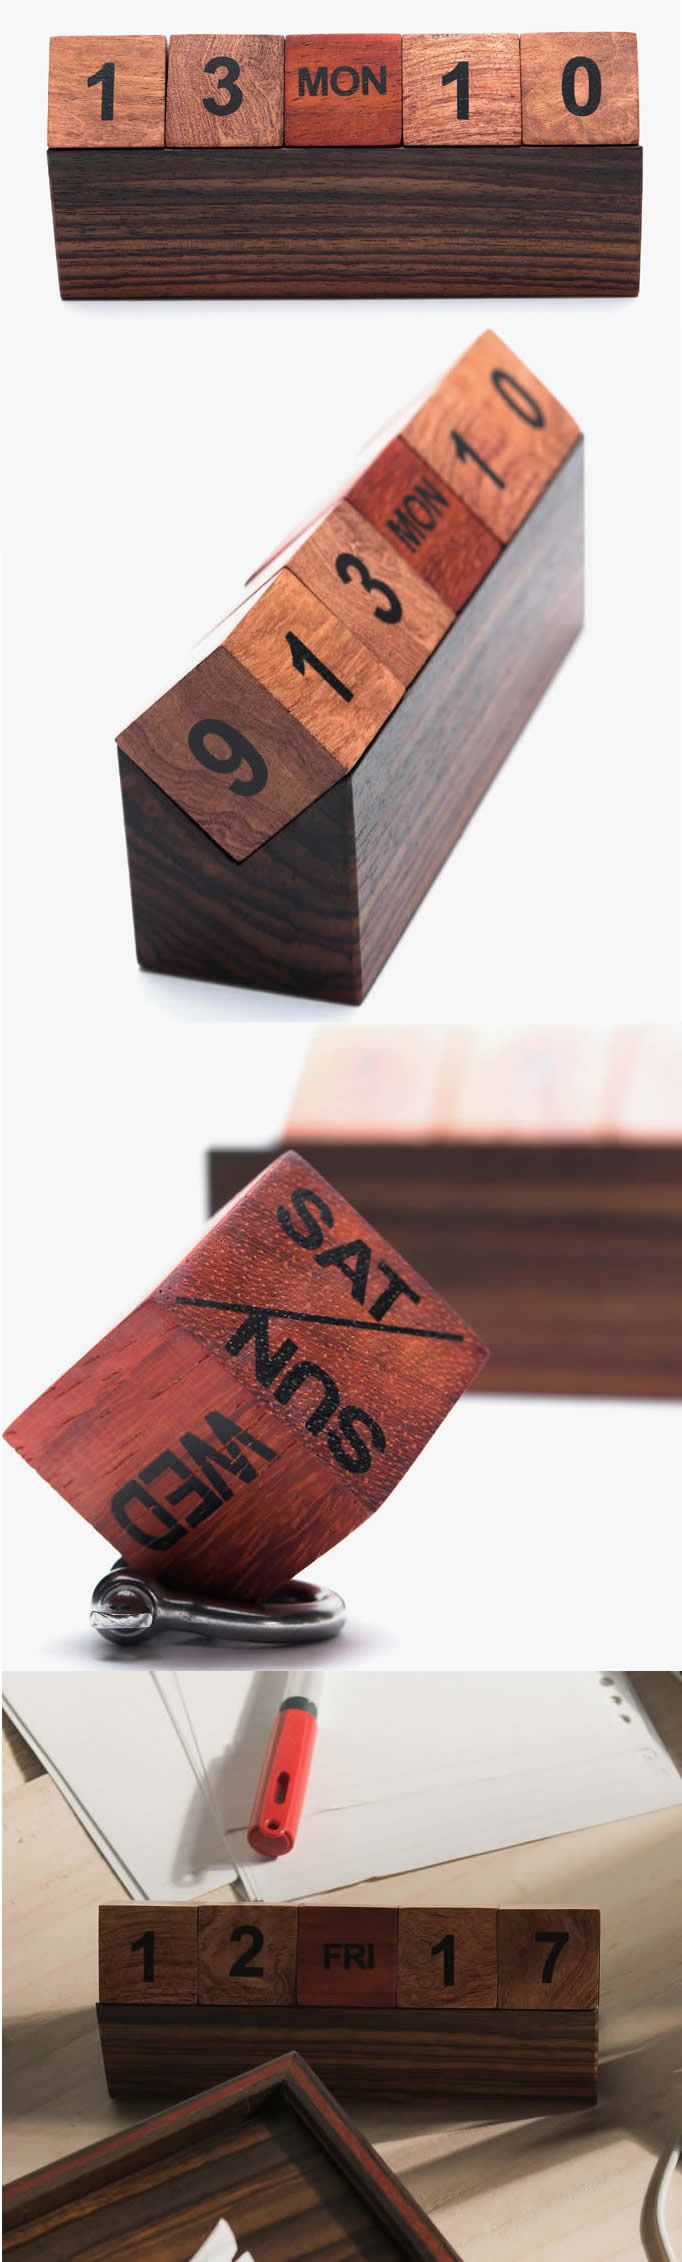 Office supplies news reviews and more make diy projects and ideas - Wooden Cubes Perpetual Calendar More Wooden Calendarwoodworking Supplieswooden Cubesperpetual Calendaroffice Giftscedar Woodoffice Suppliesdiy Ideasdiy